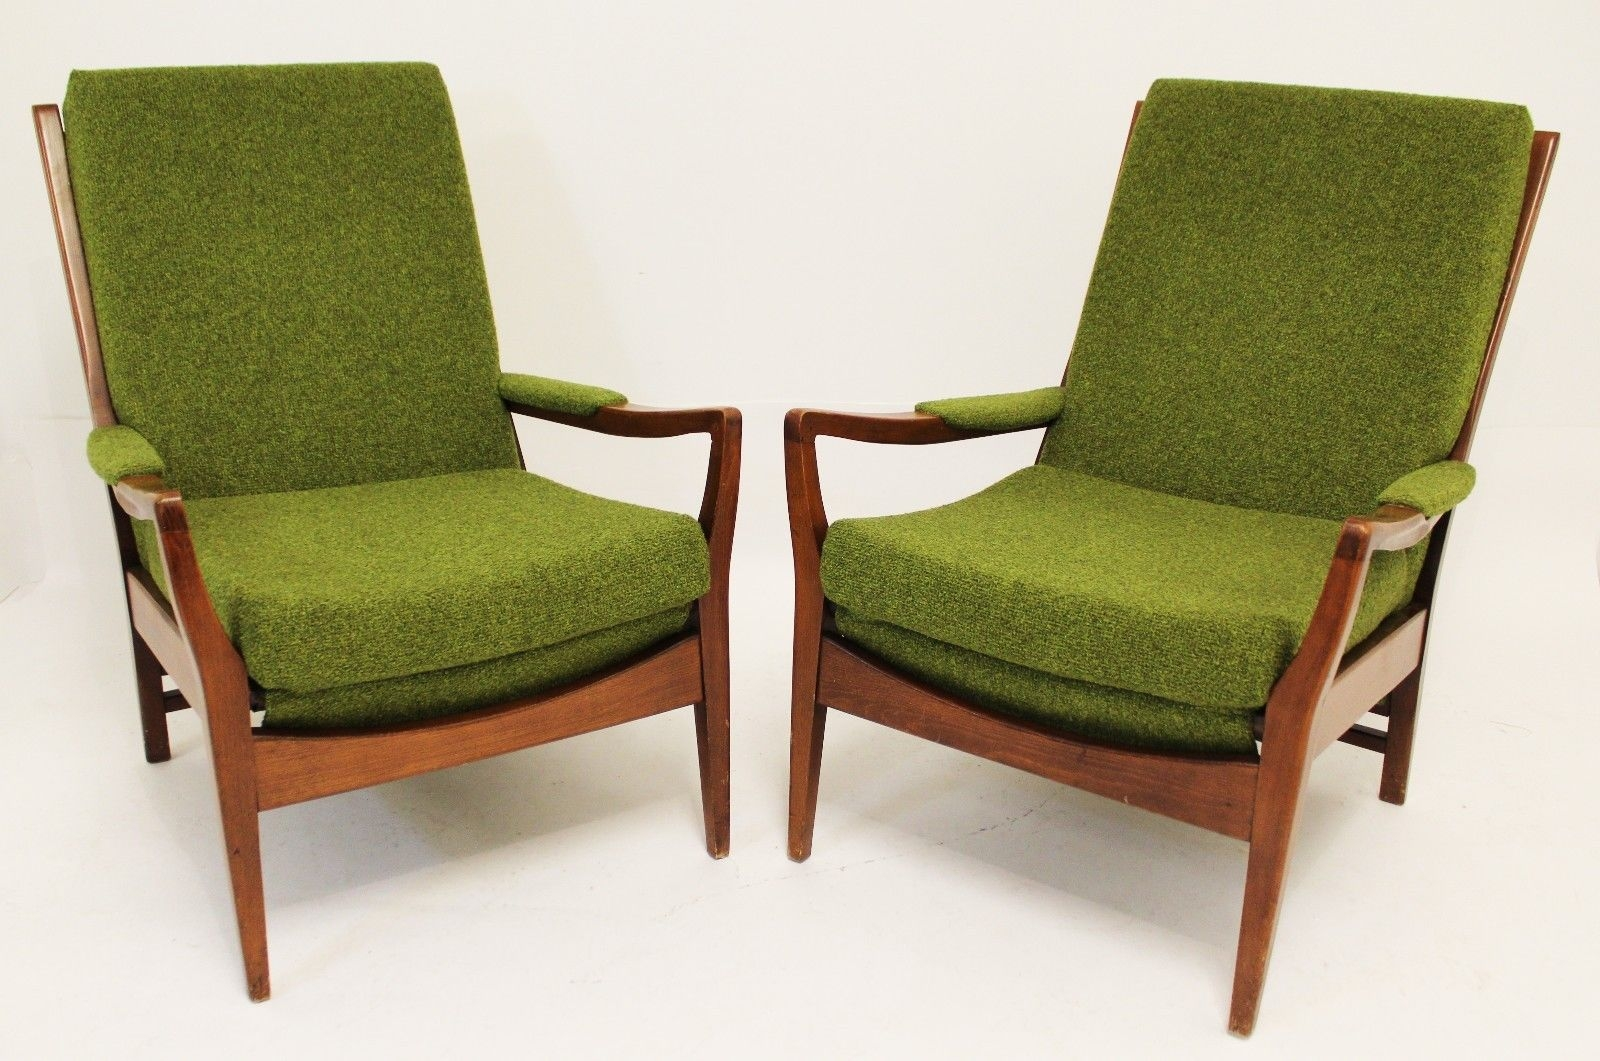 Impressive Popular Cintique Mid Century Armchairs Intended For Mid Century Modern Pair Of Cintique Walnut Chairs English Larsen (View 8 of 15)